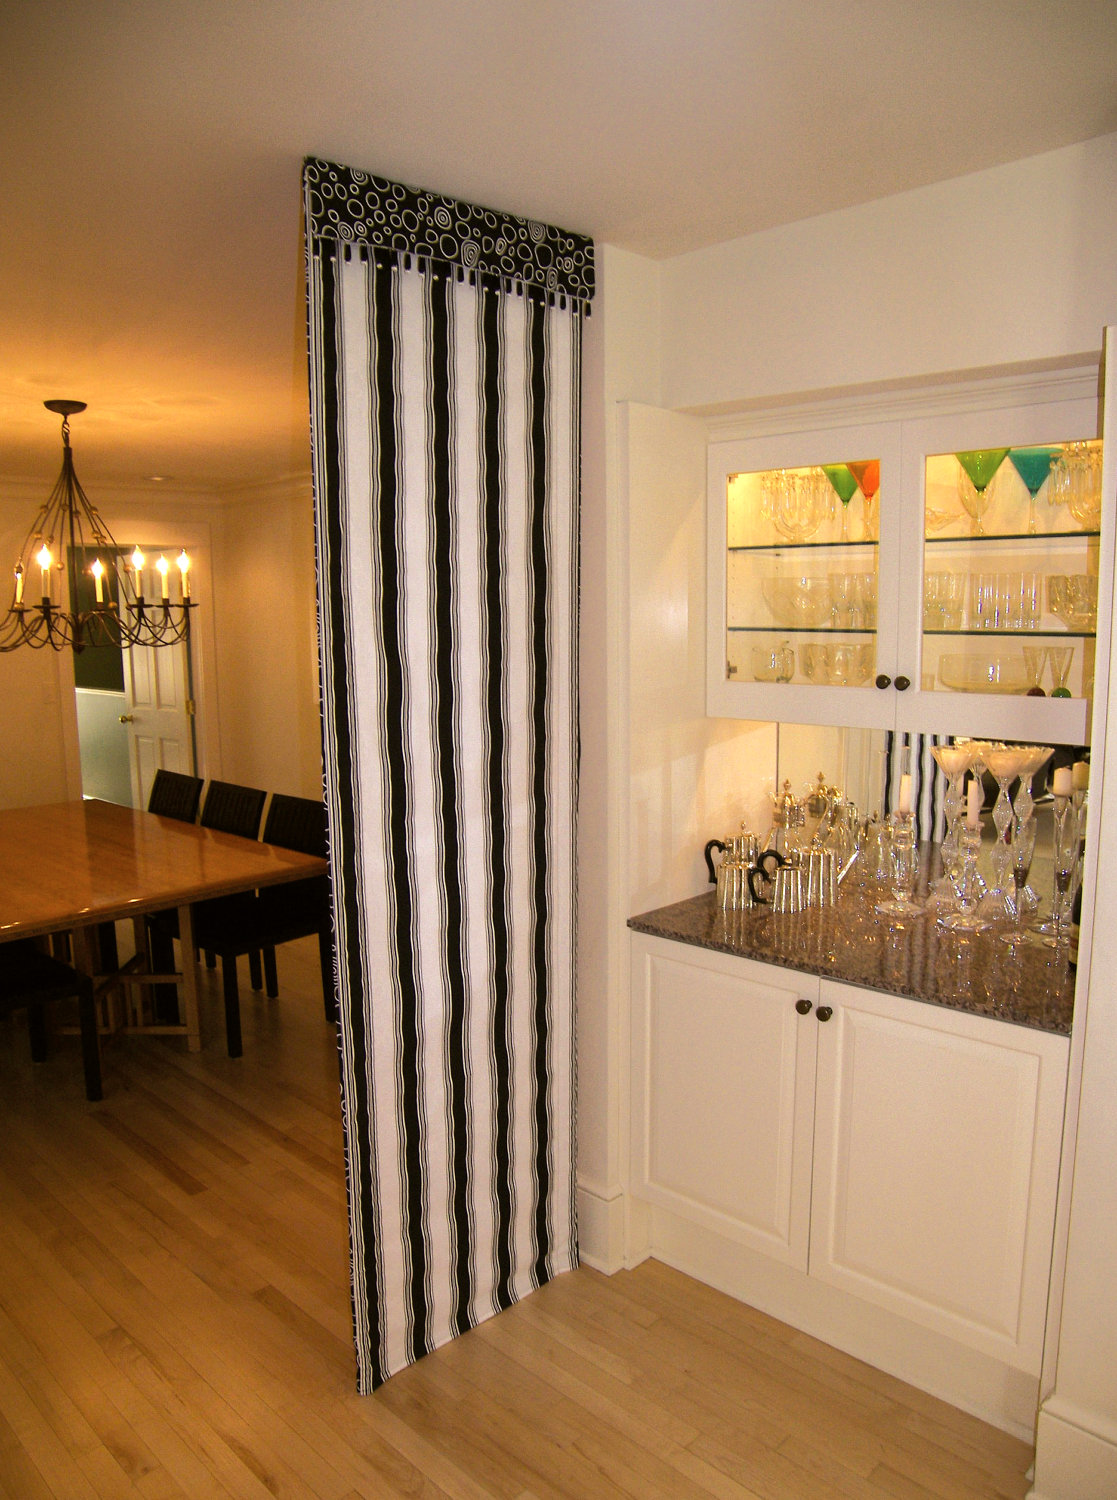 Affordable Nice Small Room Dividers Simple Interior simple room divider idea design in dining room madeof stripe patterned  black and white curtain and